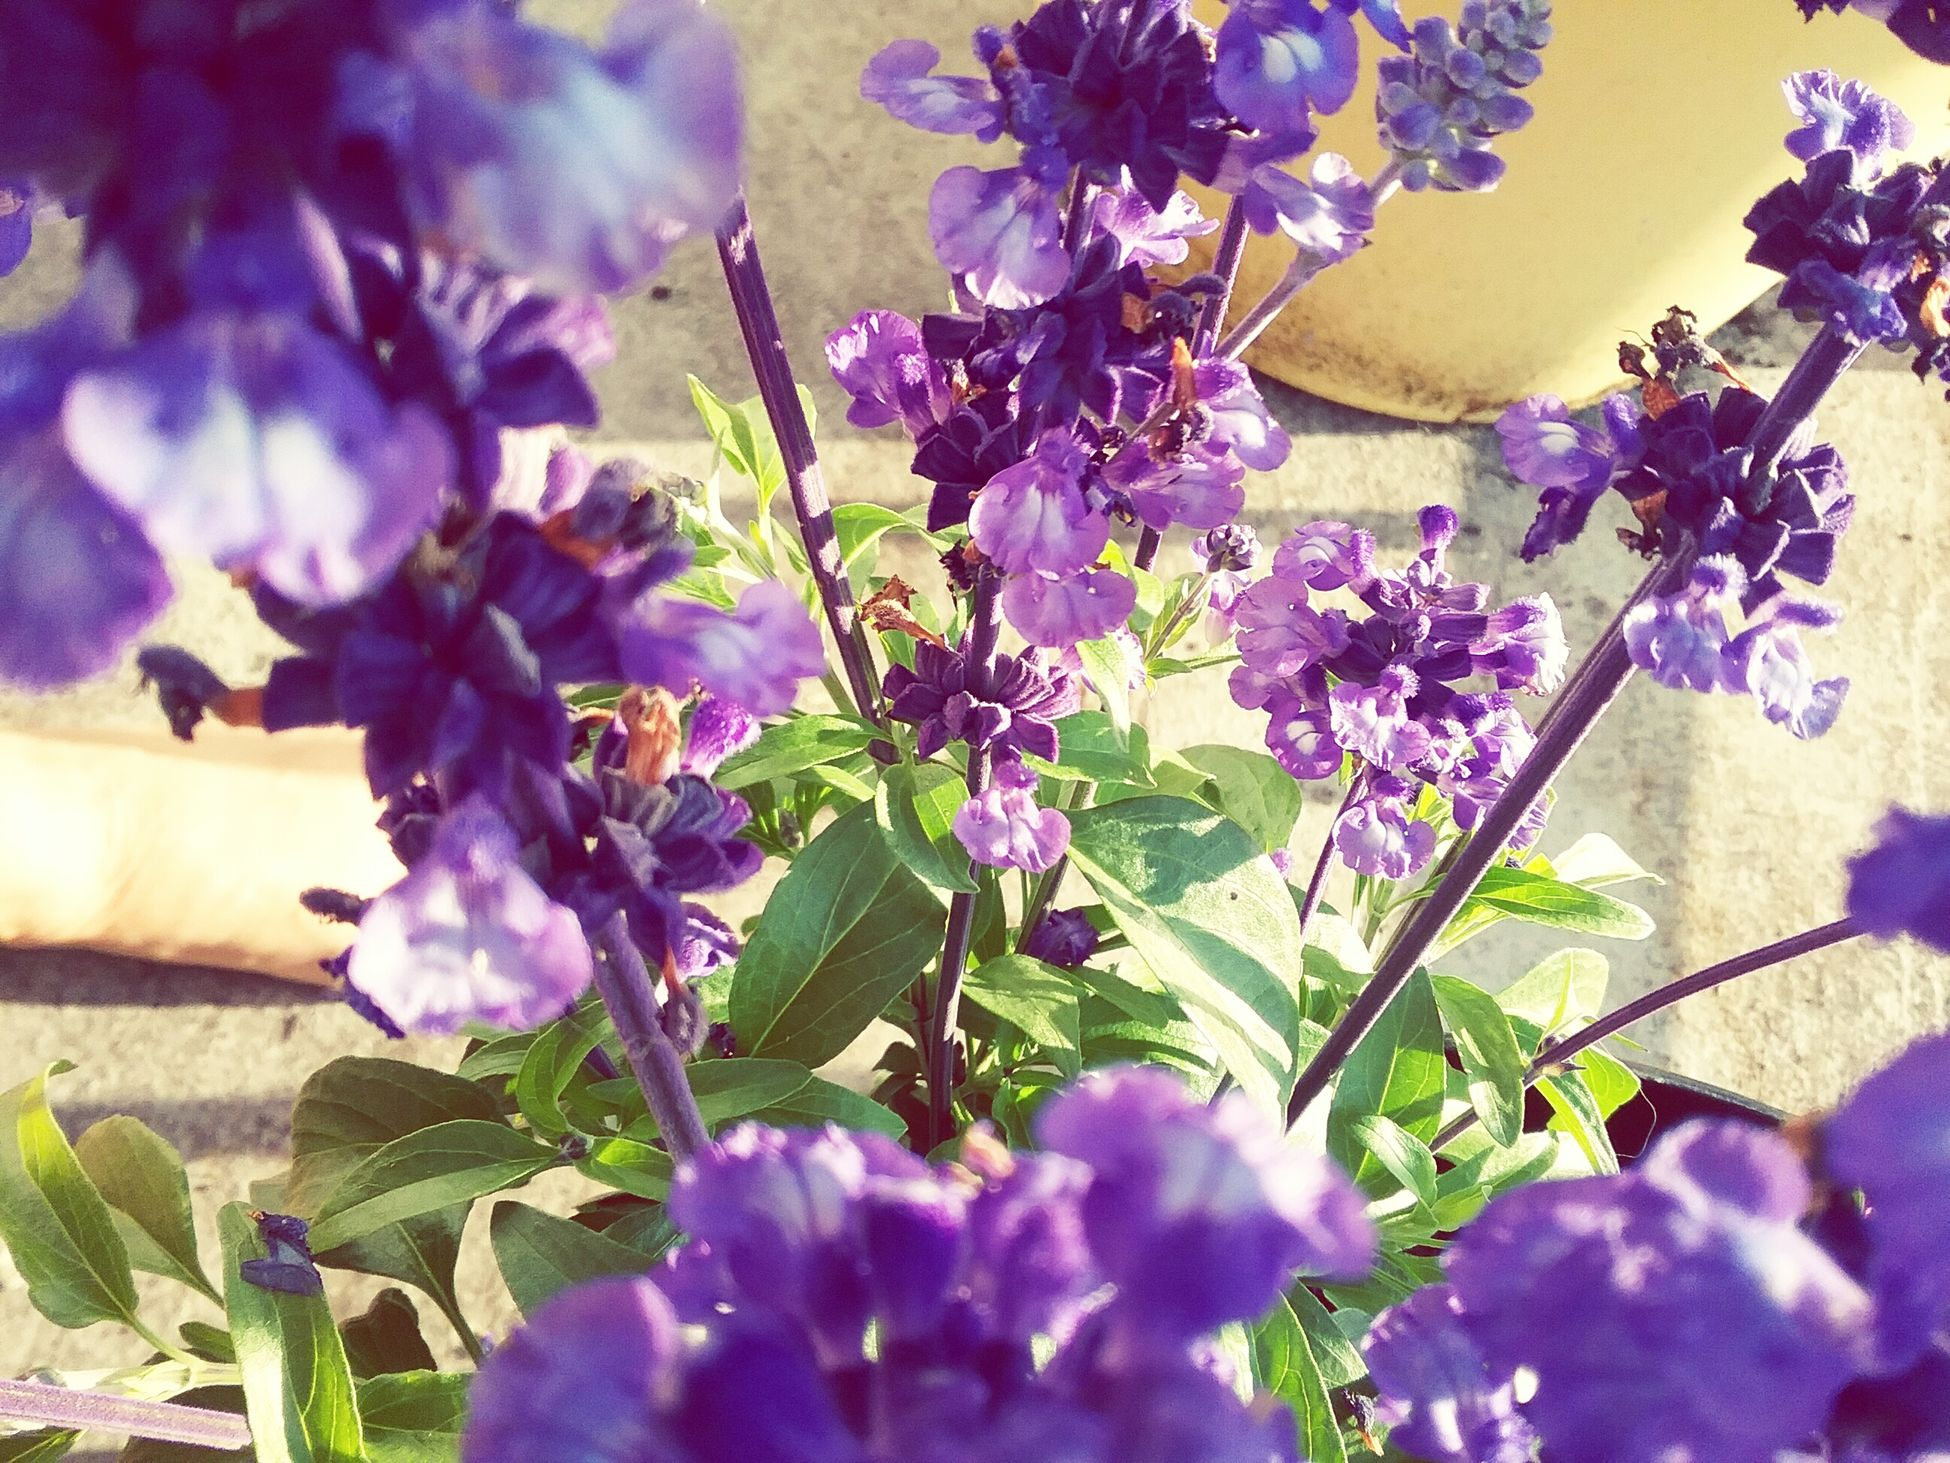 Purple Is My Favorite Color , Most Know That Now, Anything Purple Lights Up My Life, Flowers,petals